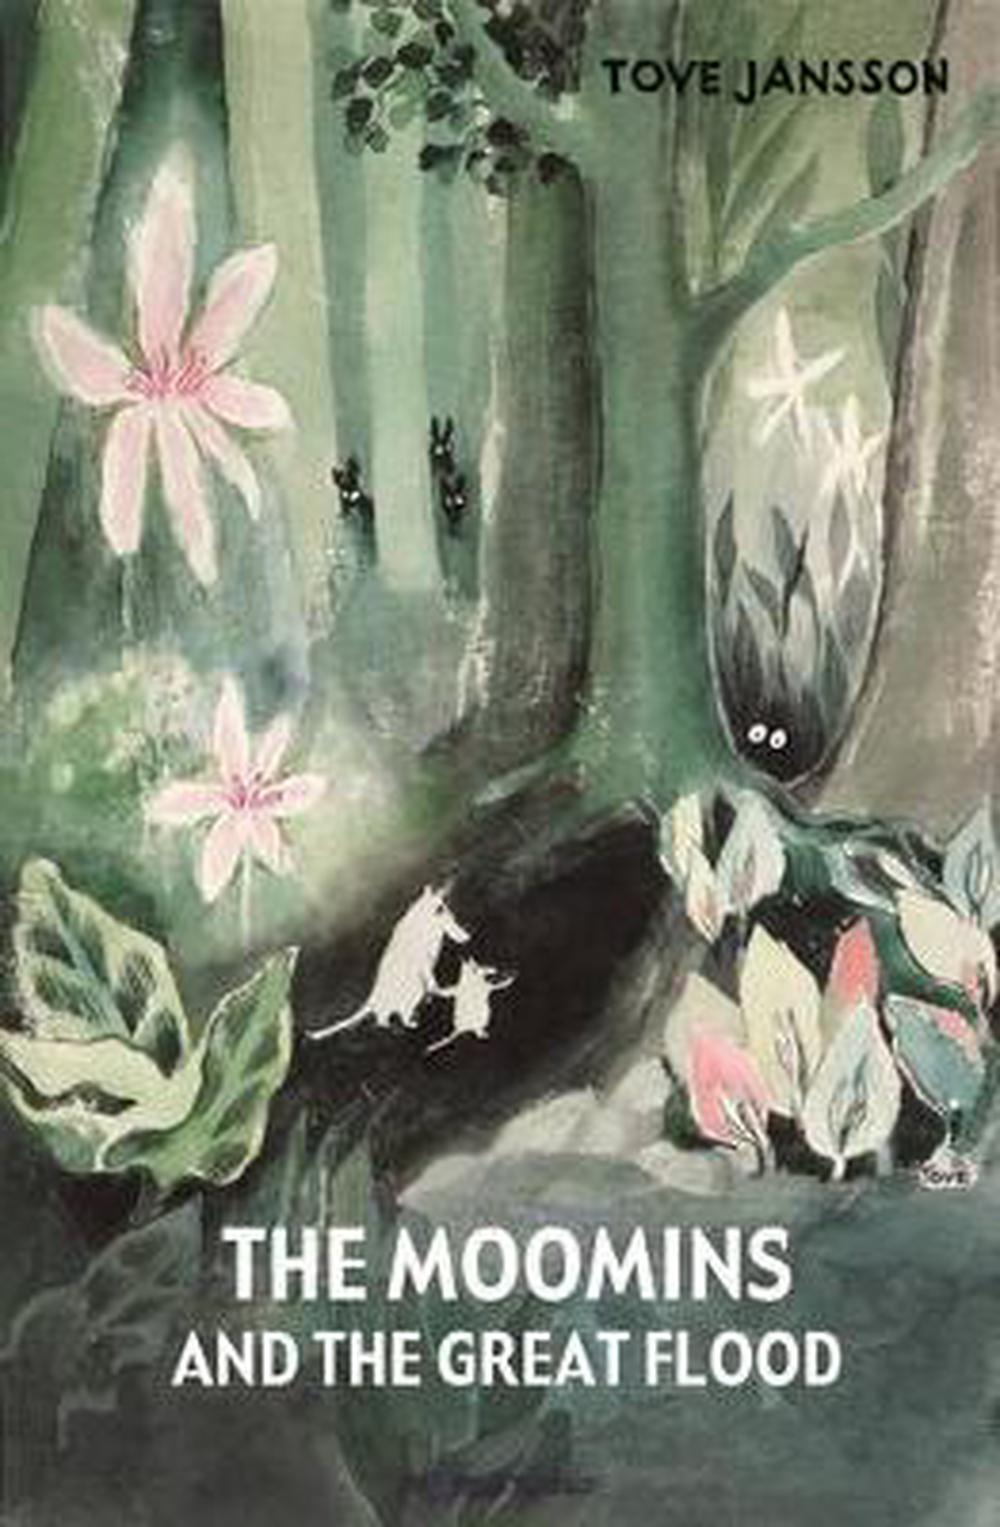 Moomins and the Great Flood